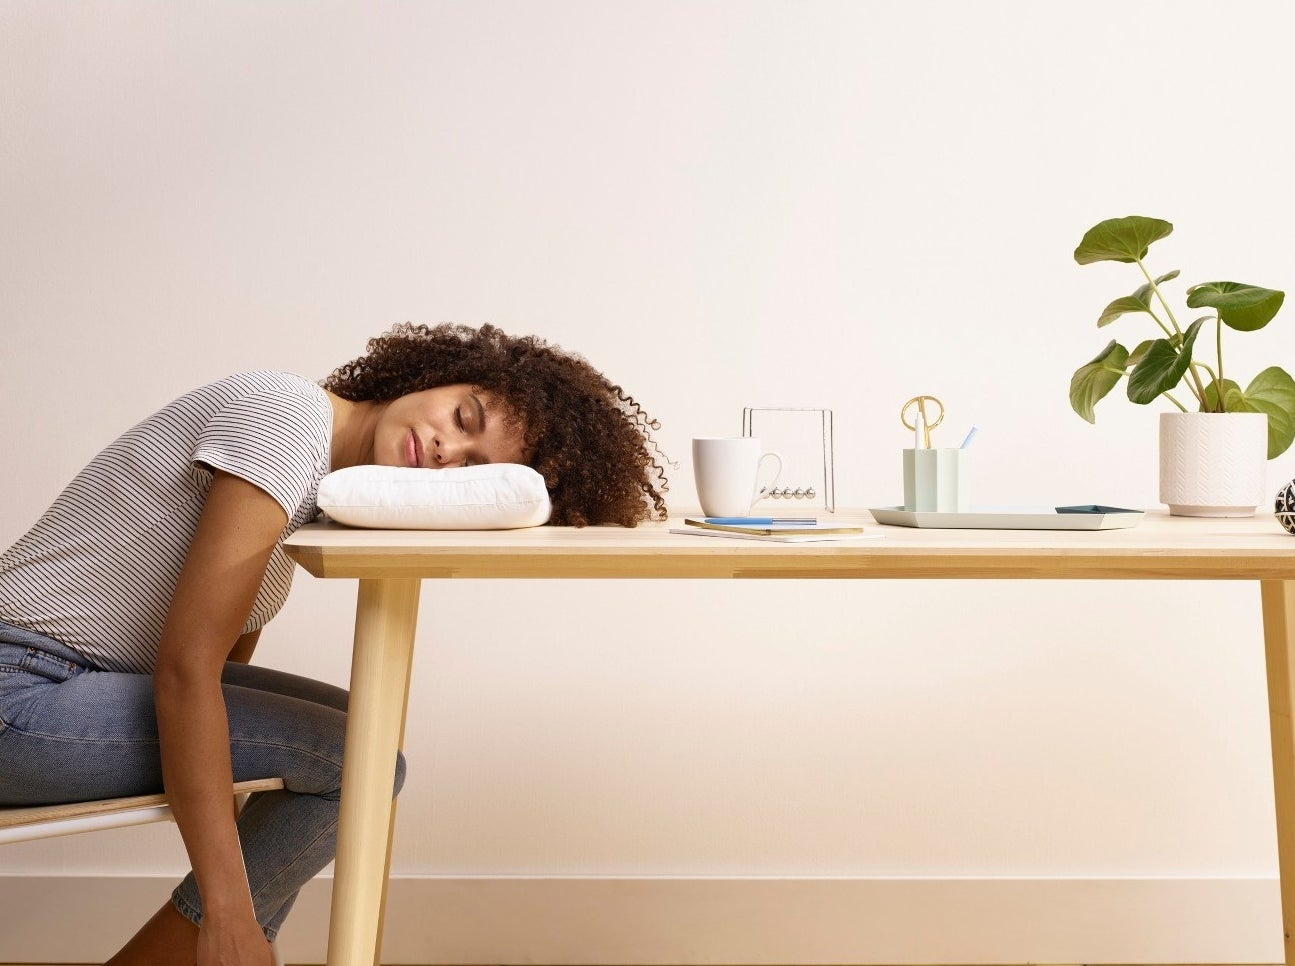 Model using travel pillow to sleep on table